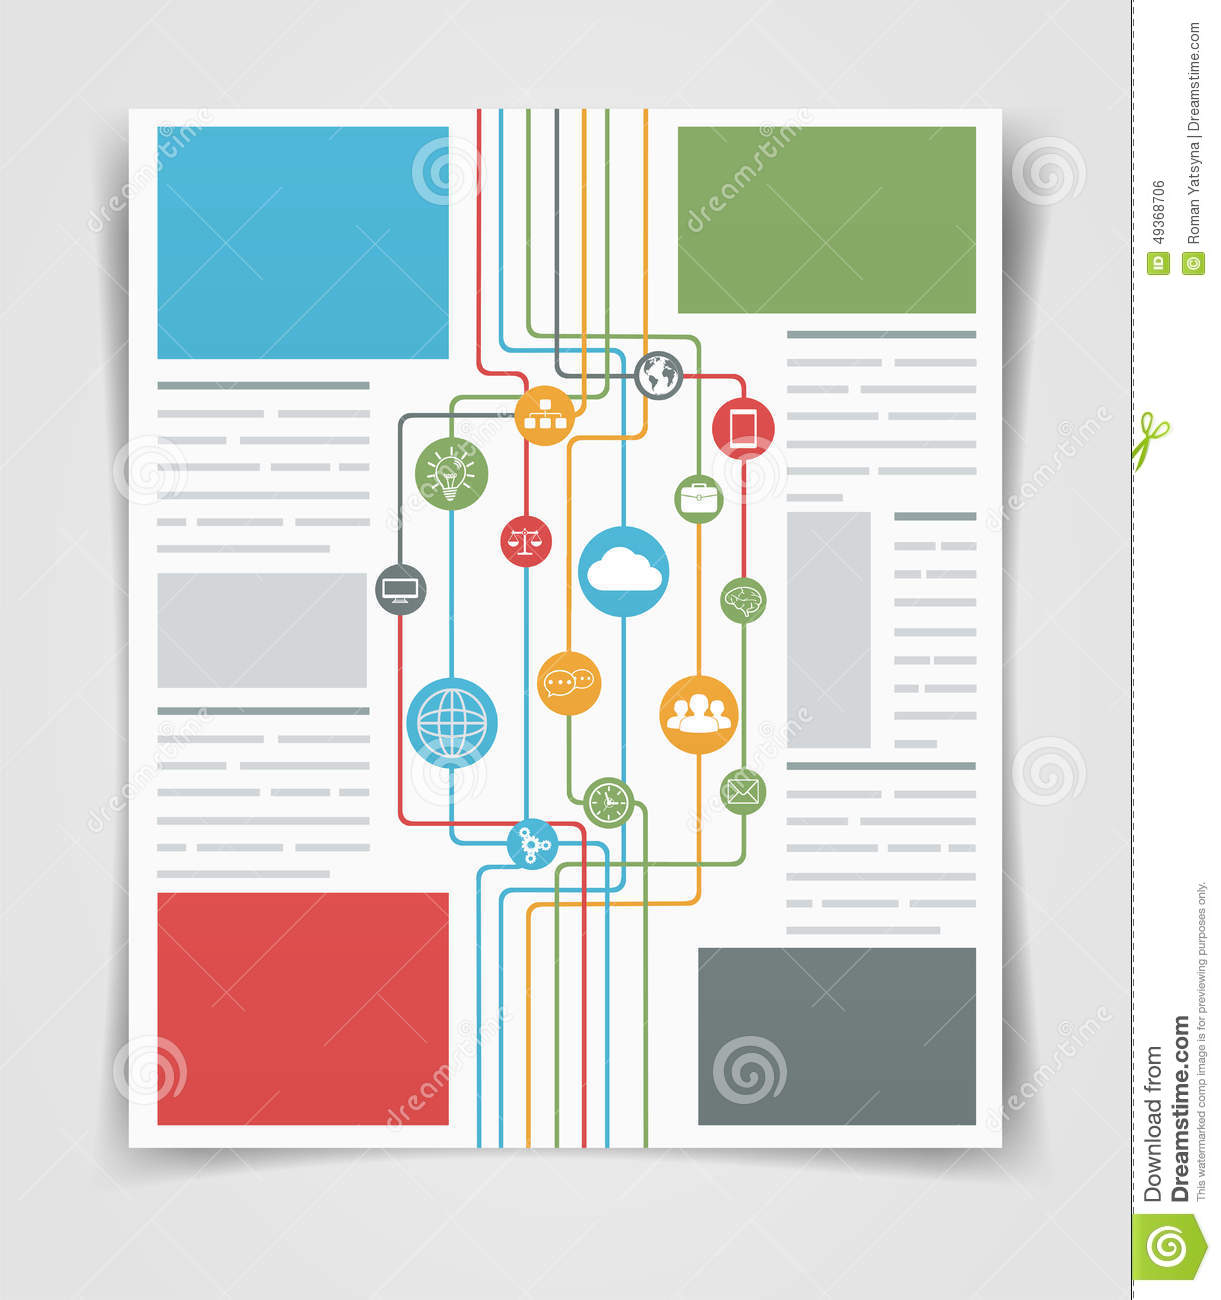 Layout Business Flyer Or Brochure Network Connections Web Template